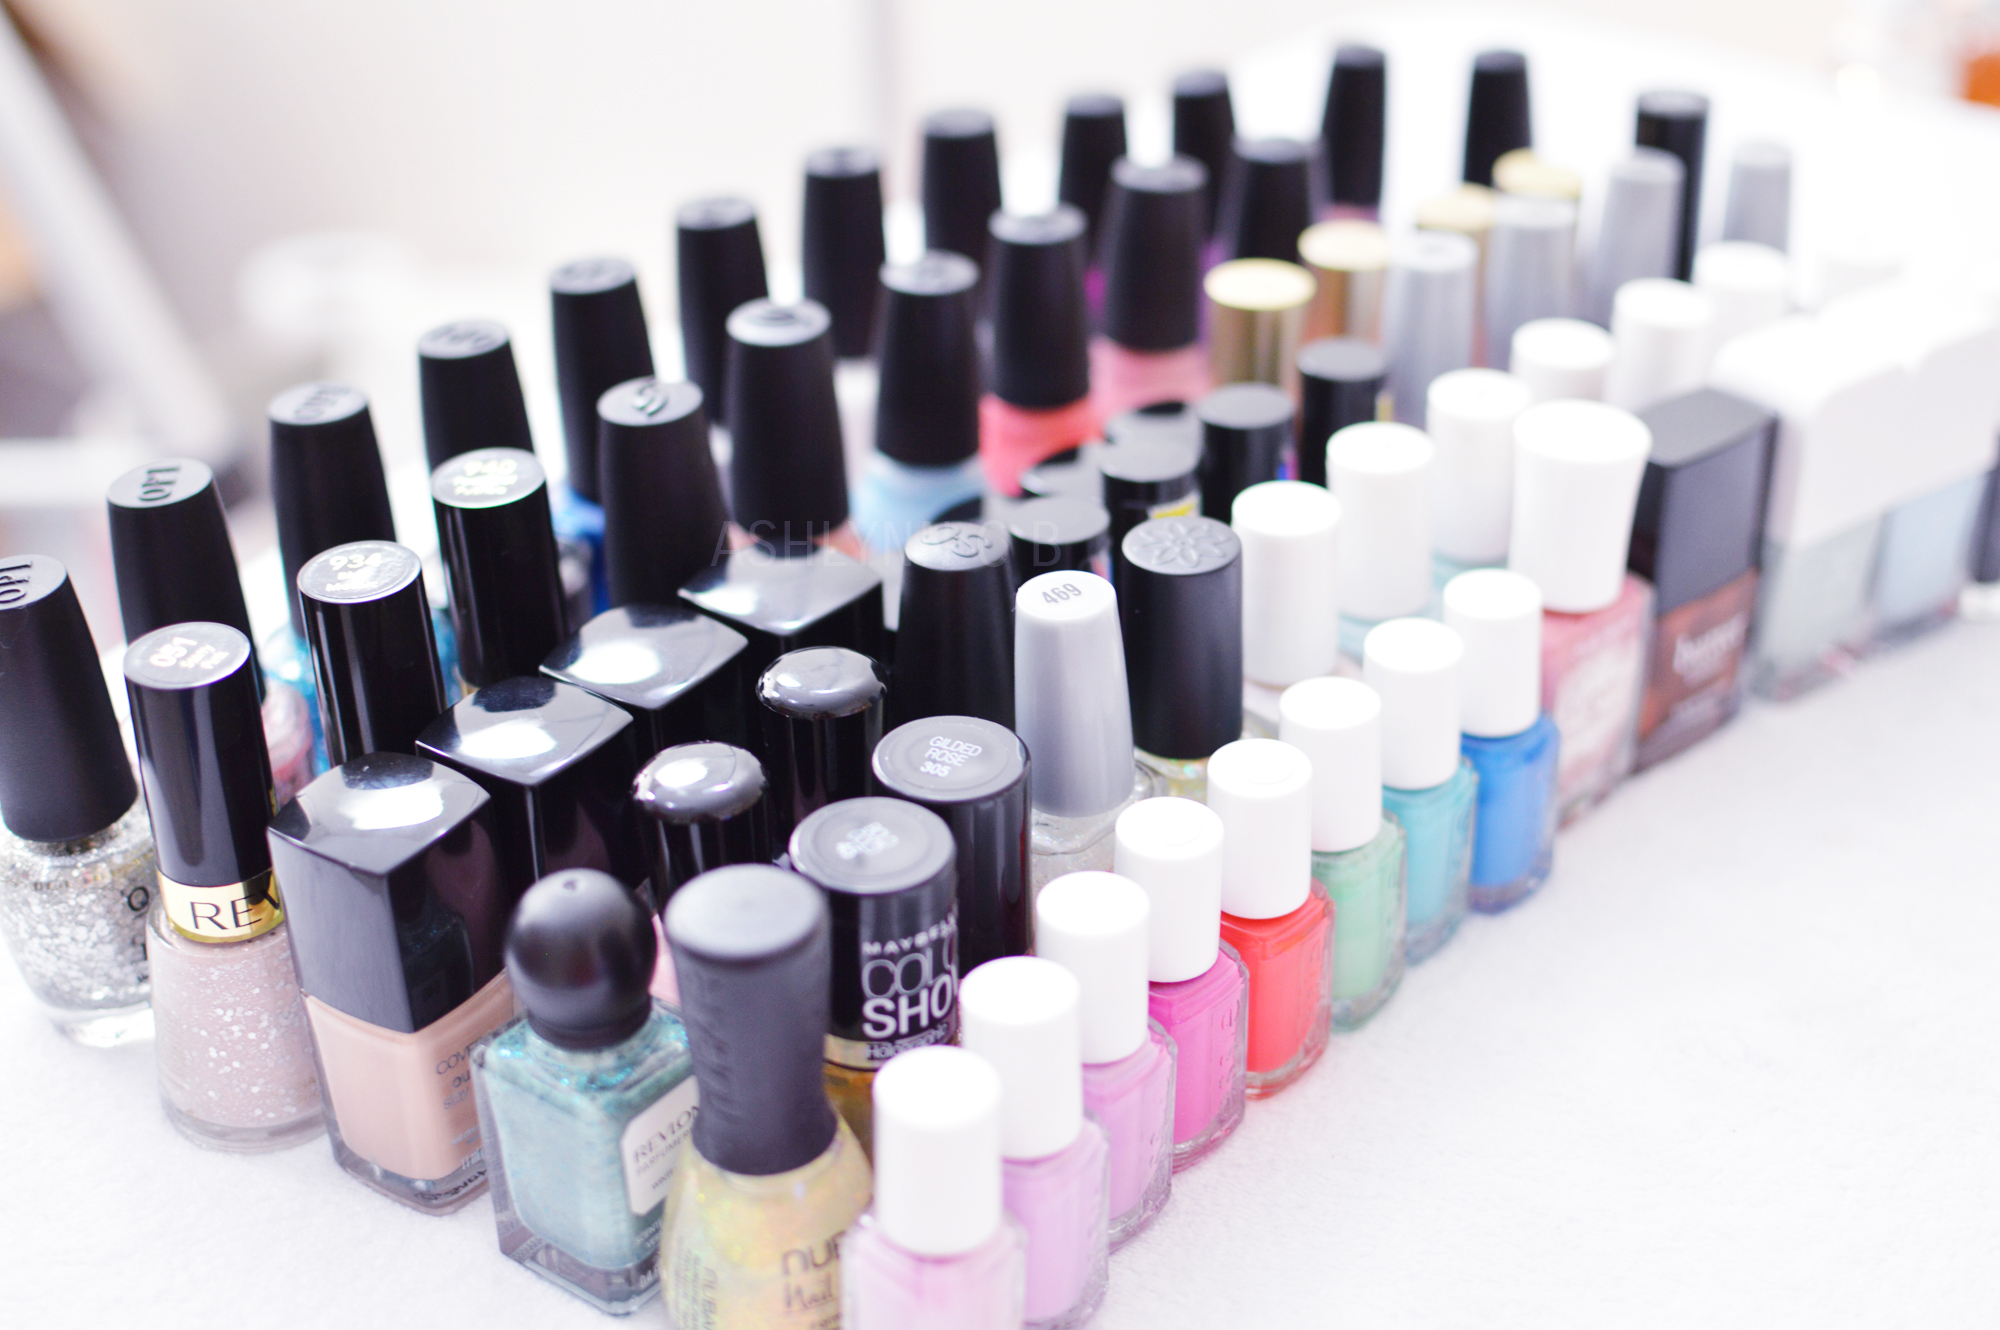 Makeup Tips - Building a Makeup Collection on a Budget - My Nail Polish Collection